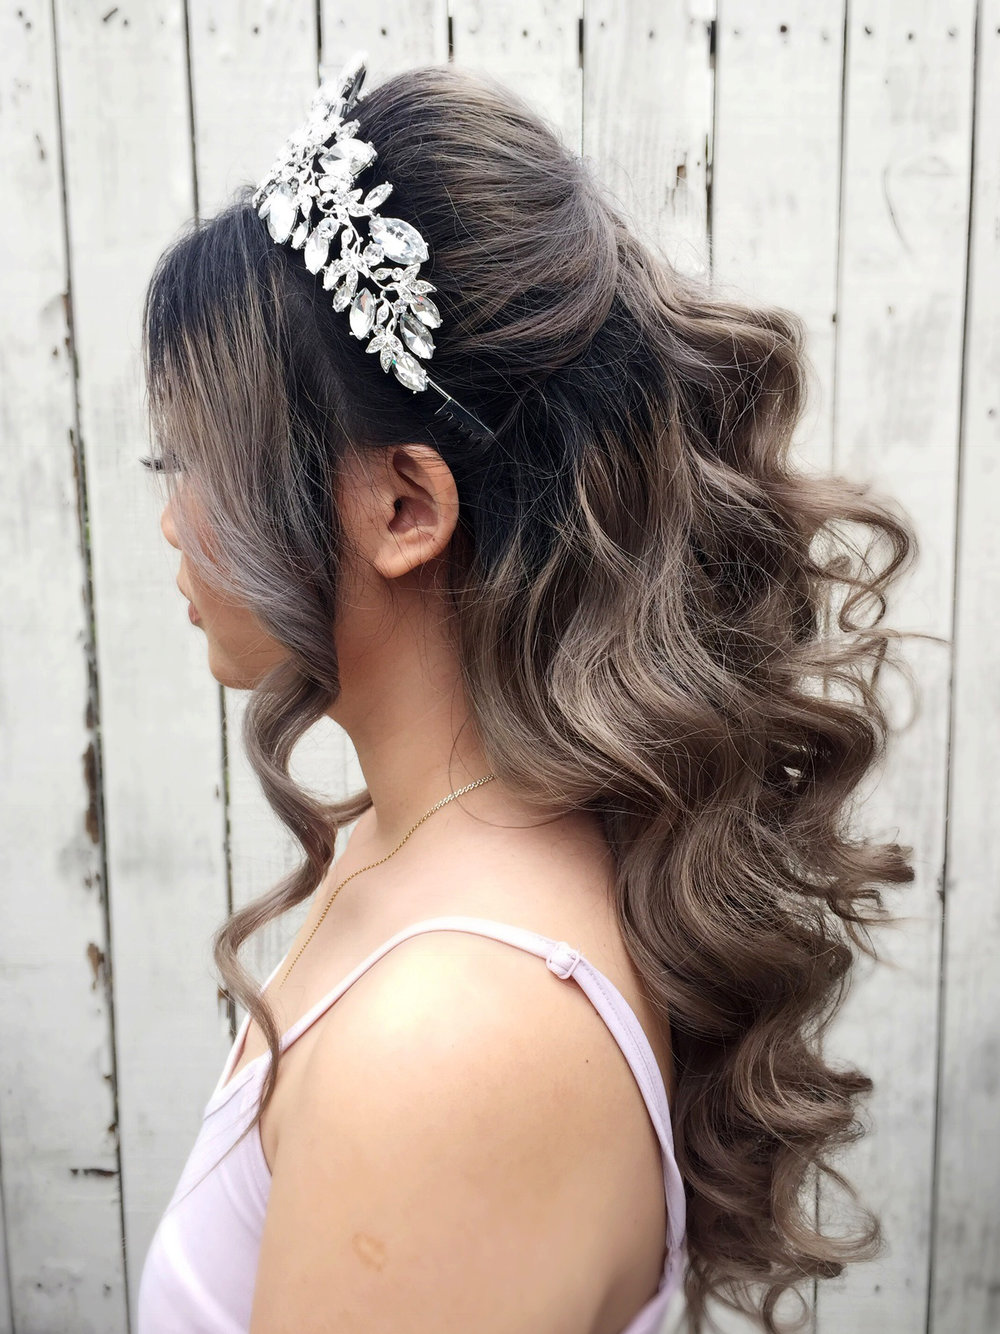 Wavy princess bride bridal hair beauty affair la.JPG